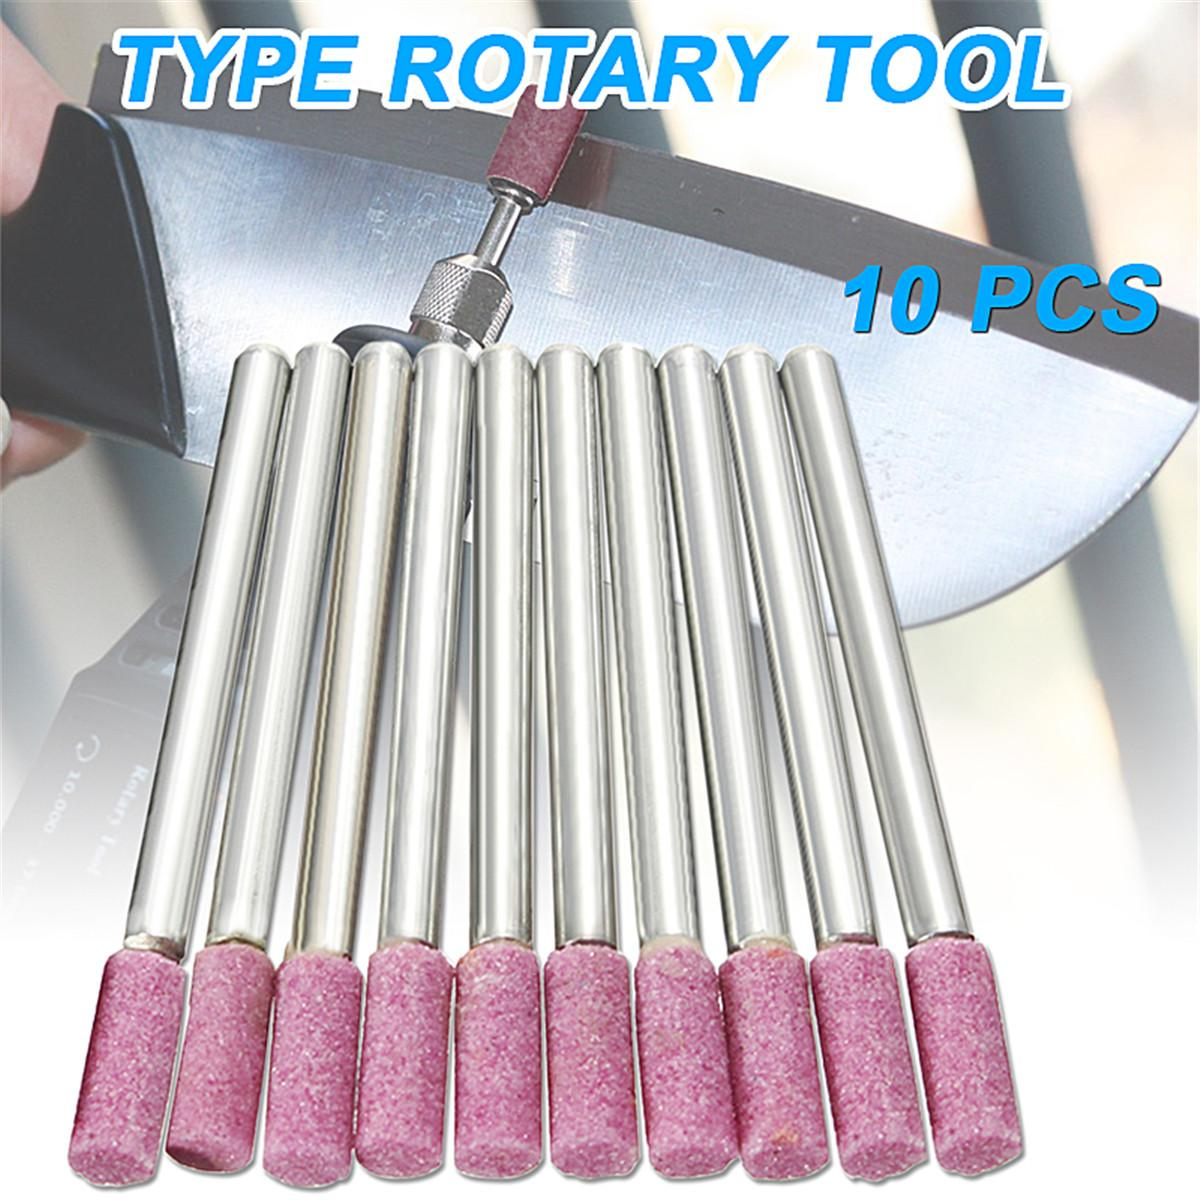 Wholesale Price 10pcs/set Abrasive Mounted Grind Stones Rotary Tool Chainsaw Sharpening For Dremel HQ